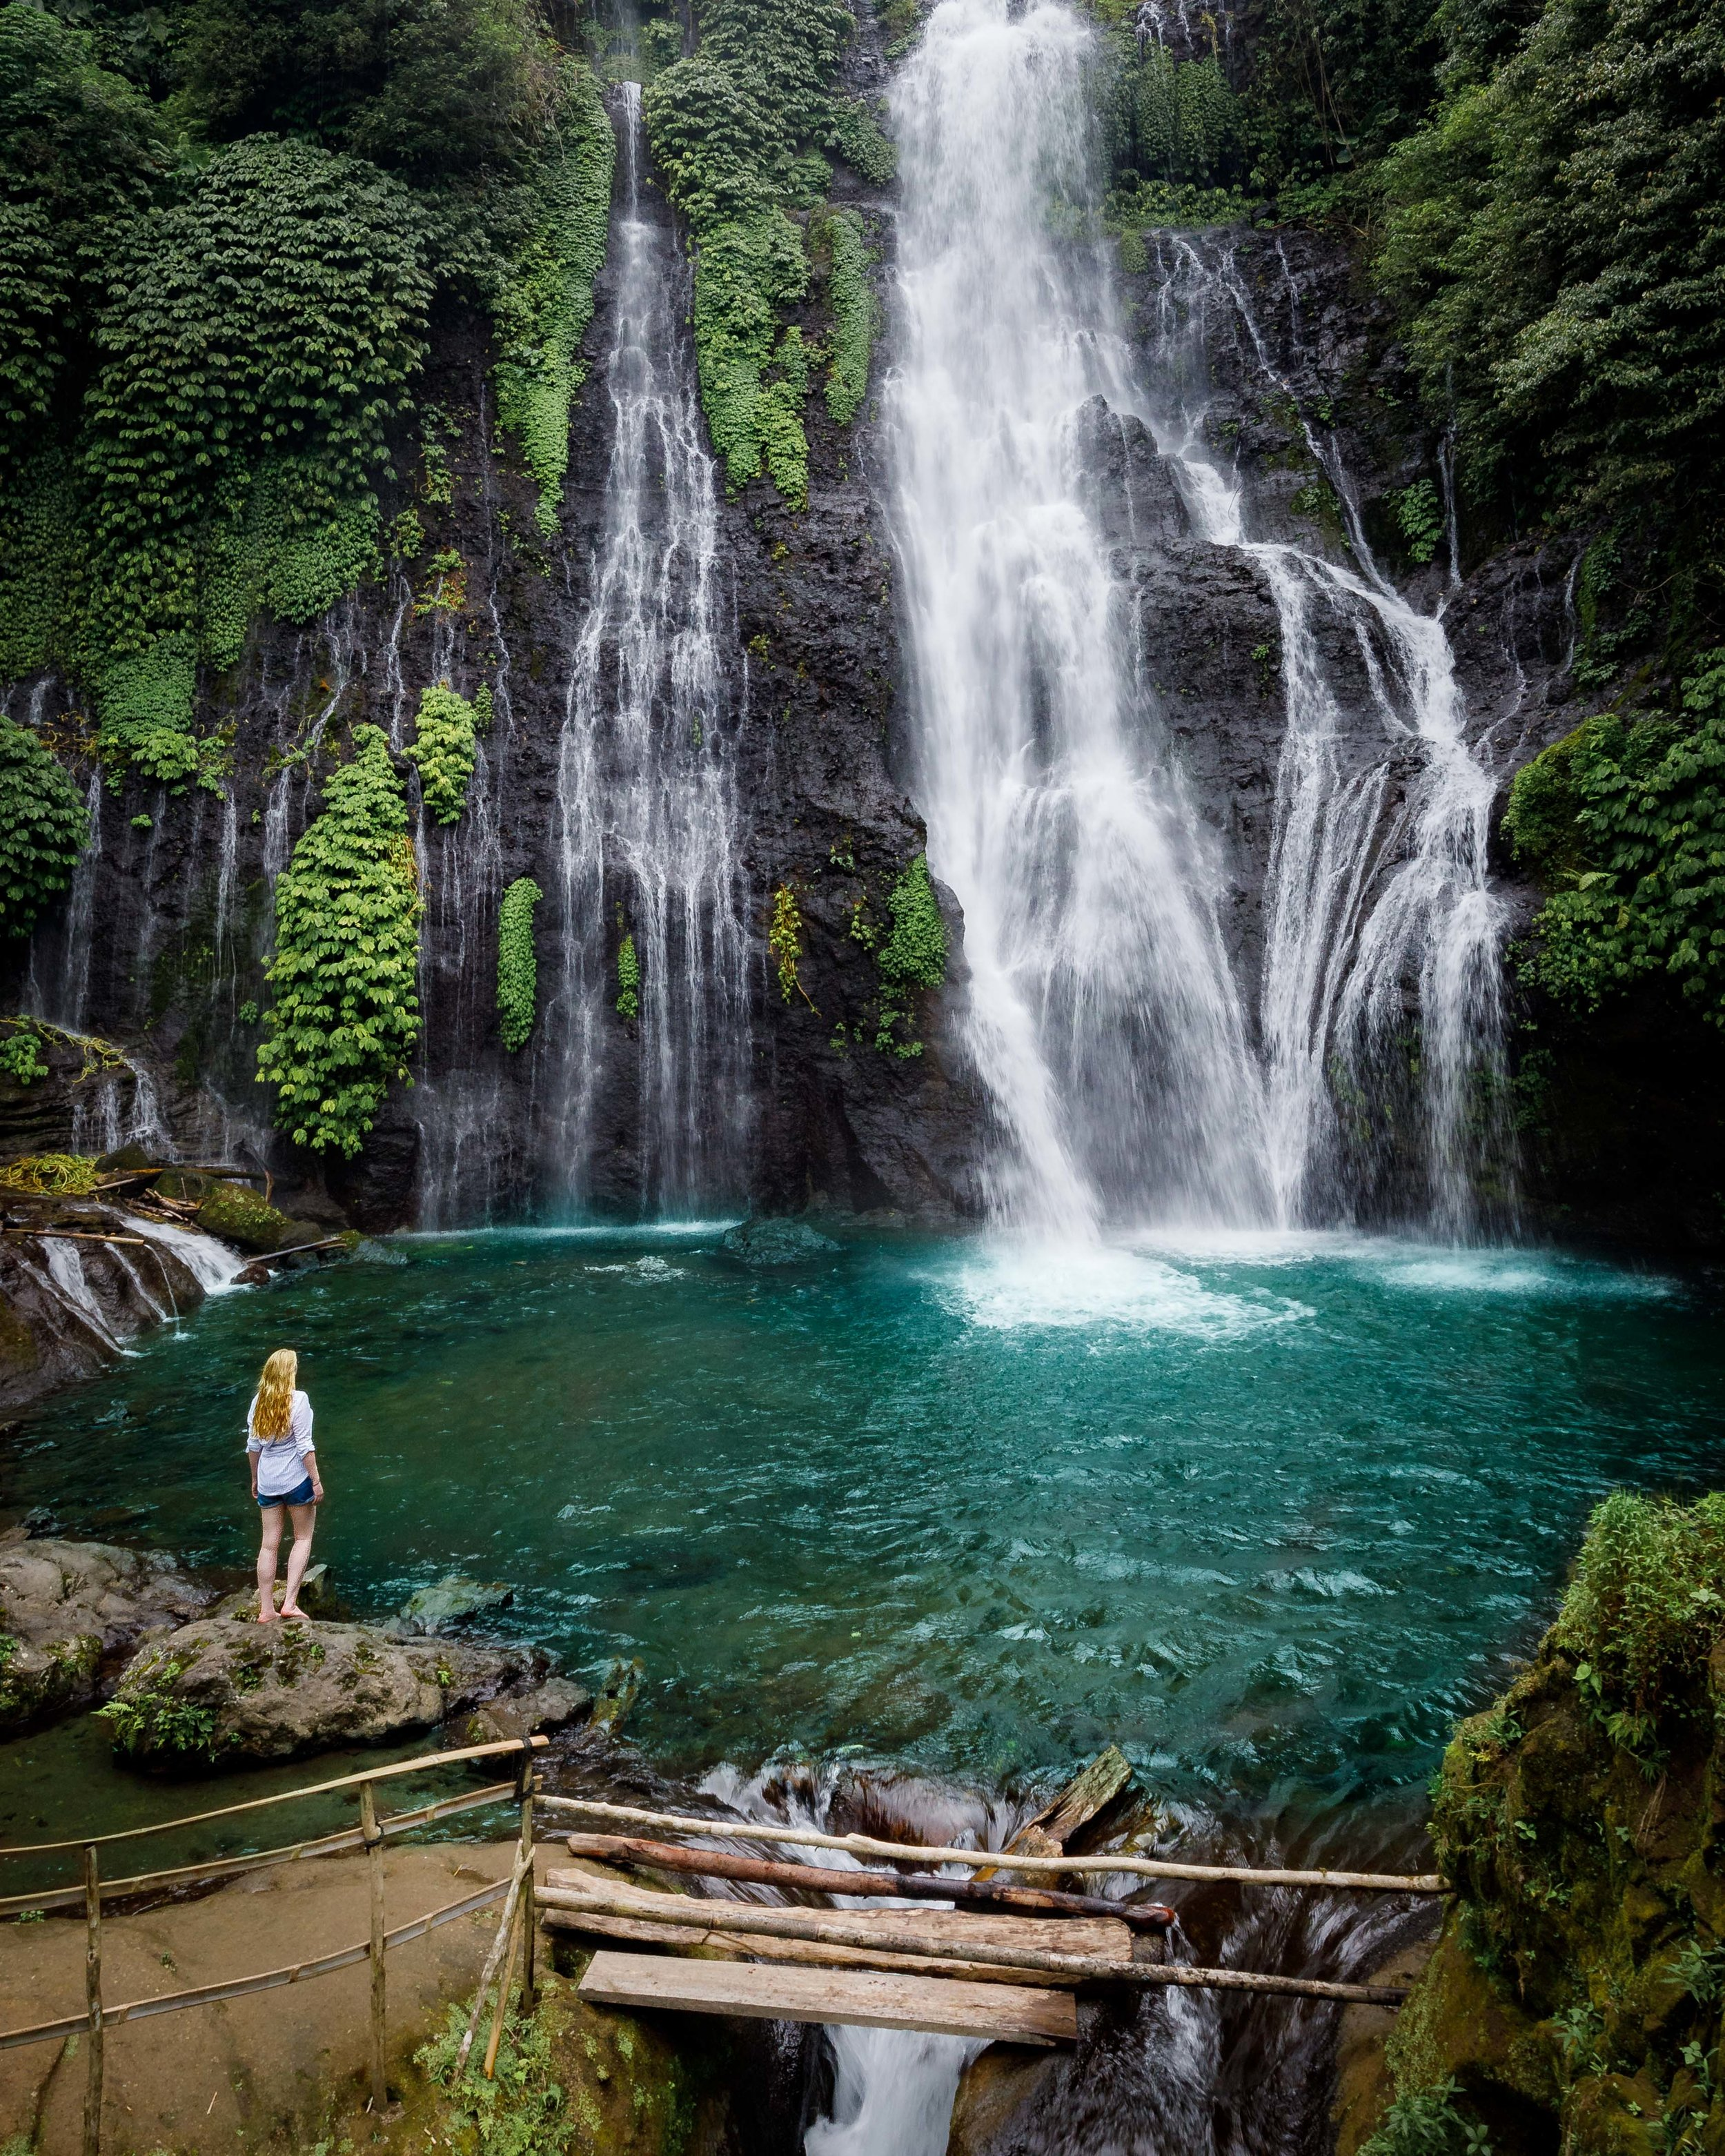 Best Waterfalls in Bali: Banyumala Waterfall